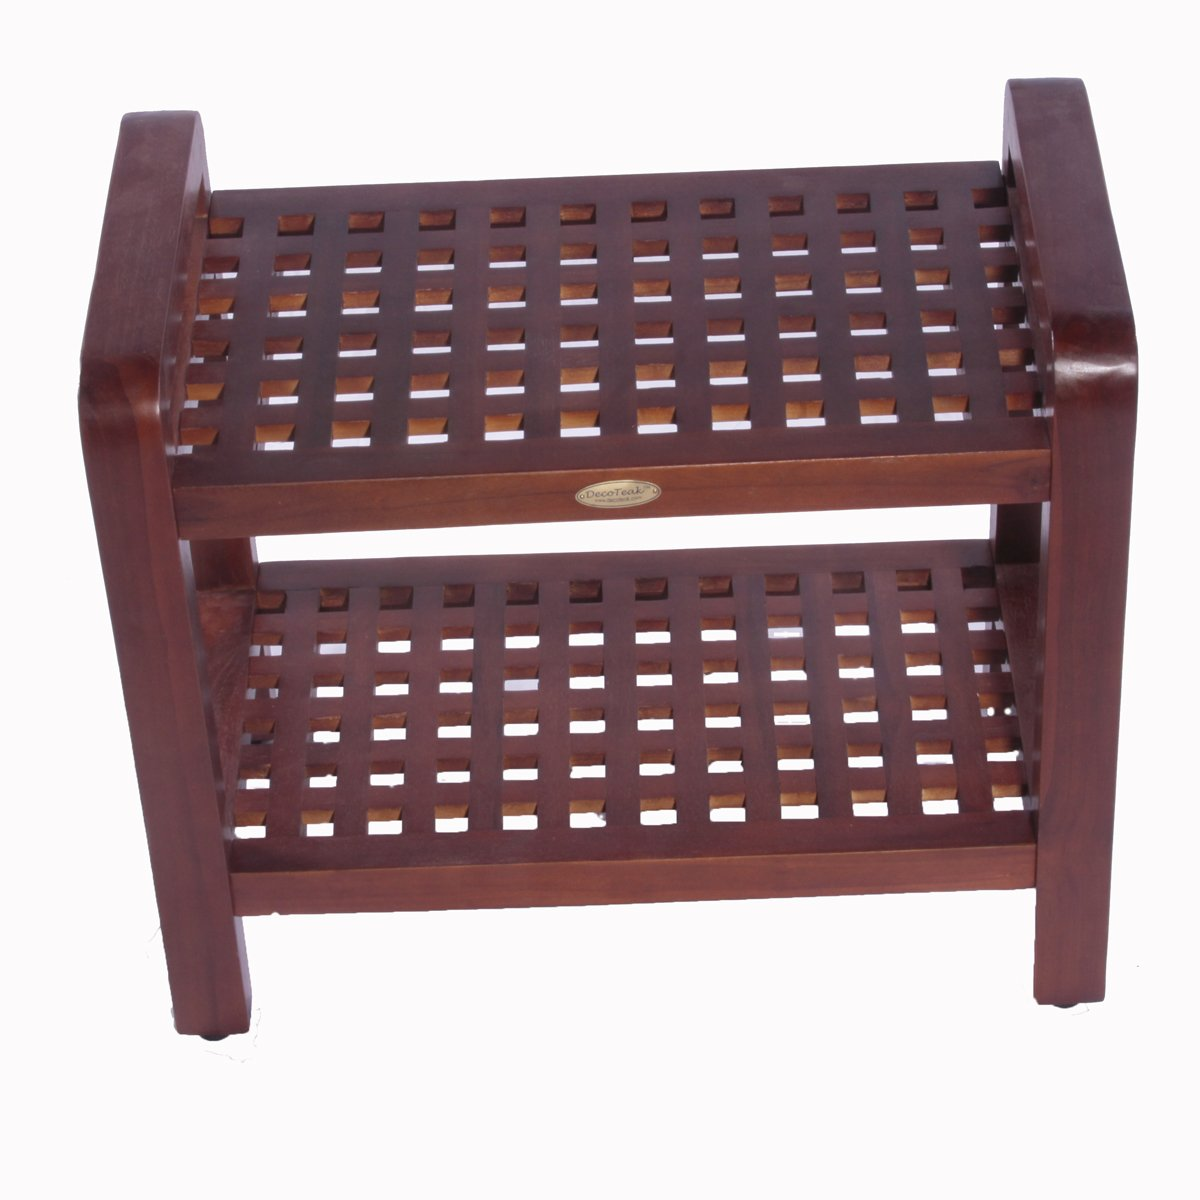 18'' Espalier Teak Lattice Shower Bench with Shelf with Lift Aide Arms- For shower, bath, sauna, living, or outdoors